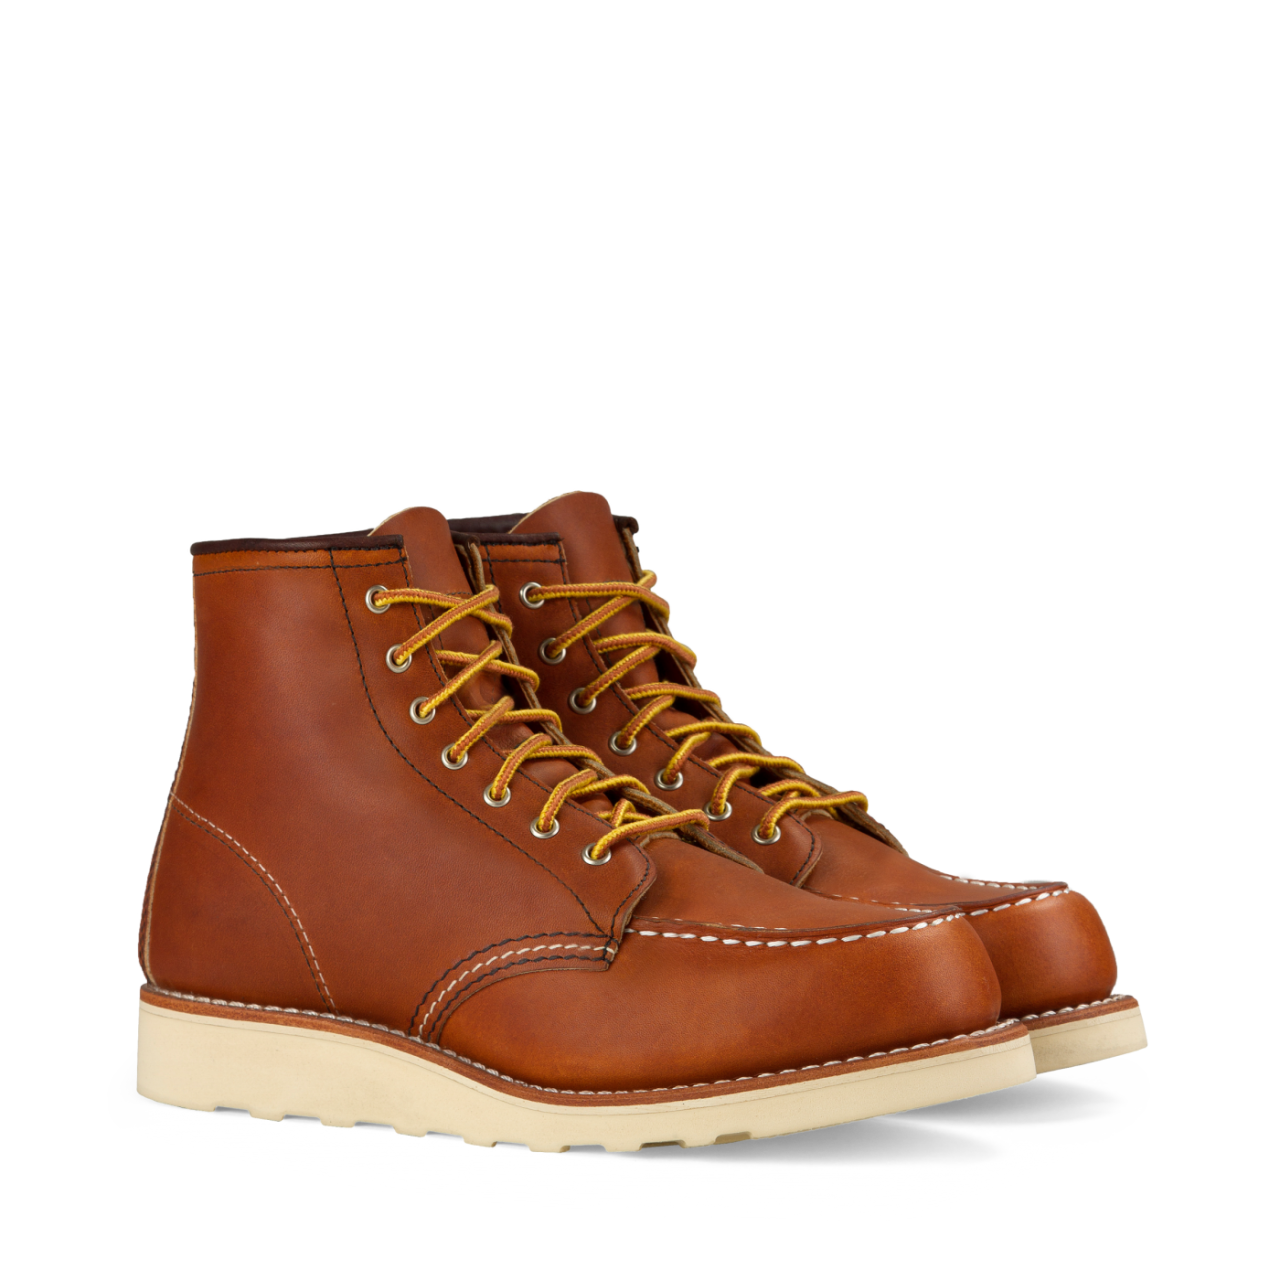 Red Wing 3375 Moc Toe